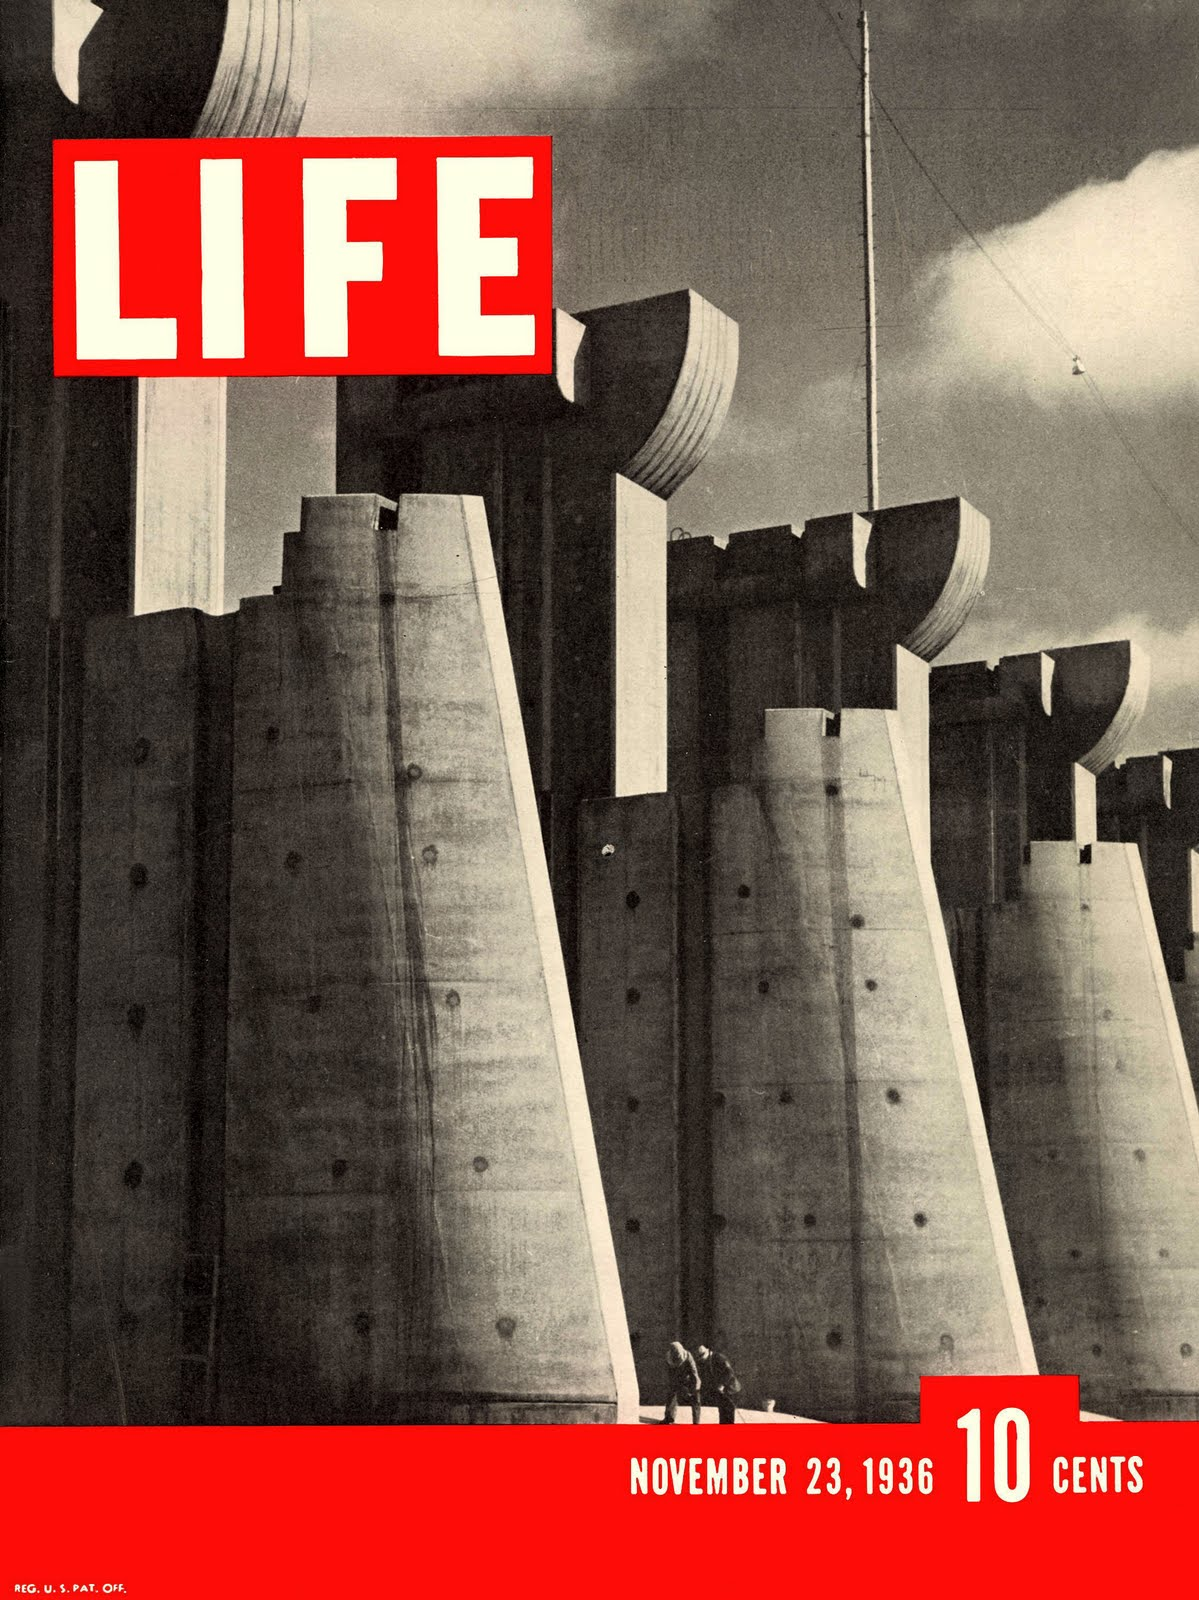 http://alexwaterhousehayward.com/blog/uploaded_images/life-Magazine-cover-709797.jpg